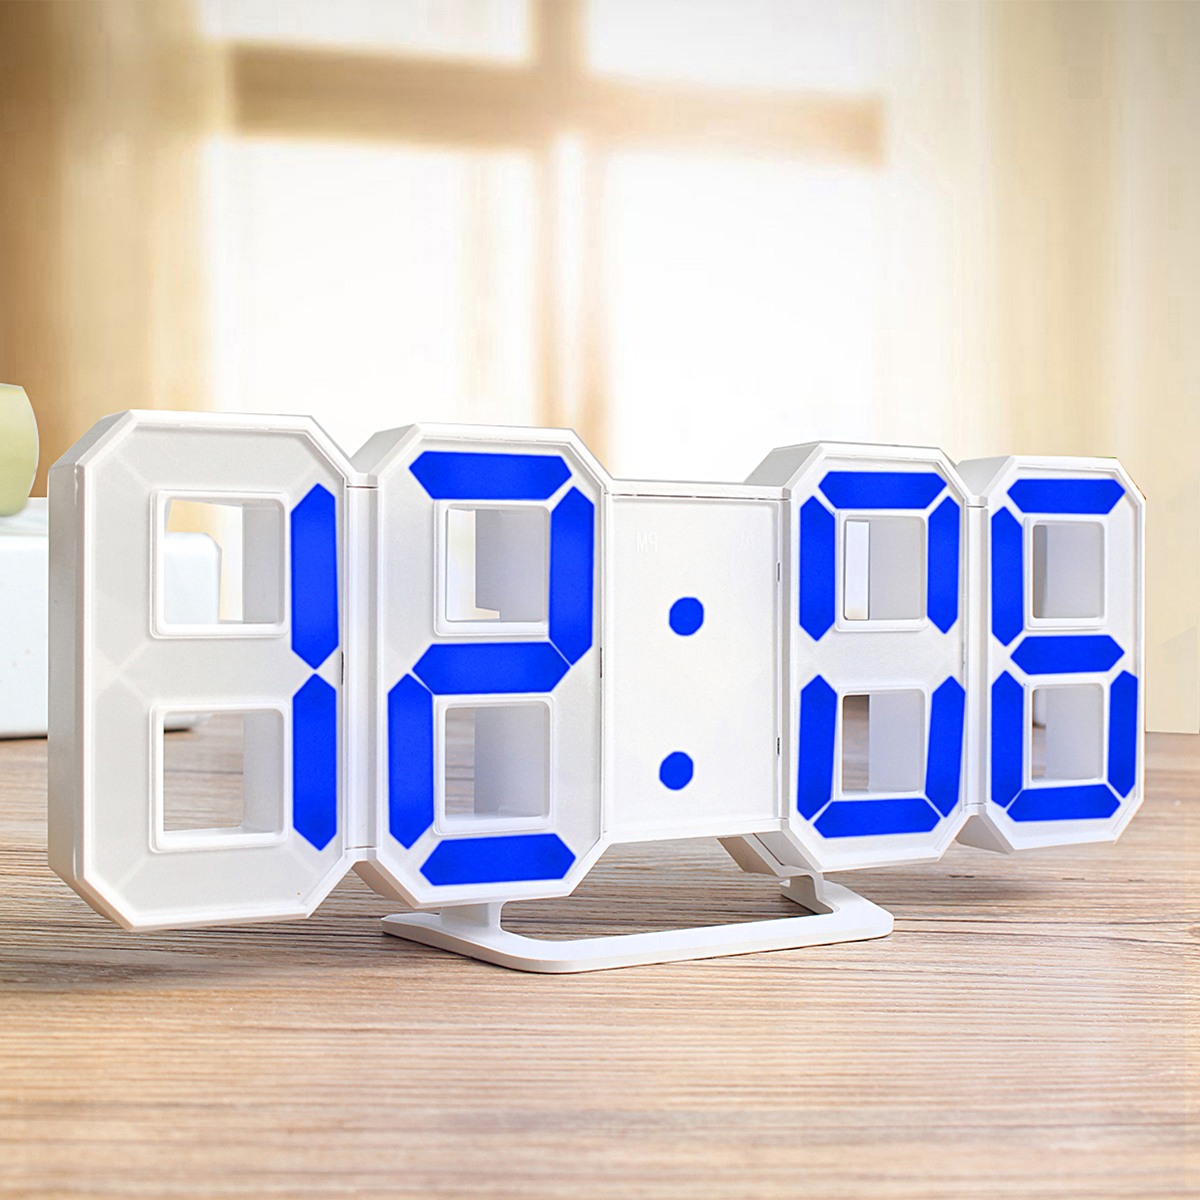 Digoo DCK3 Large 3D LED Digital Wall Clock Alarm Clock With Snooze